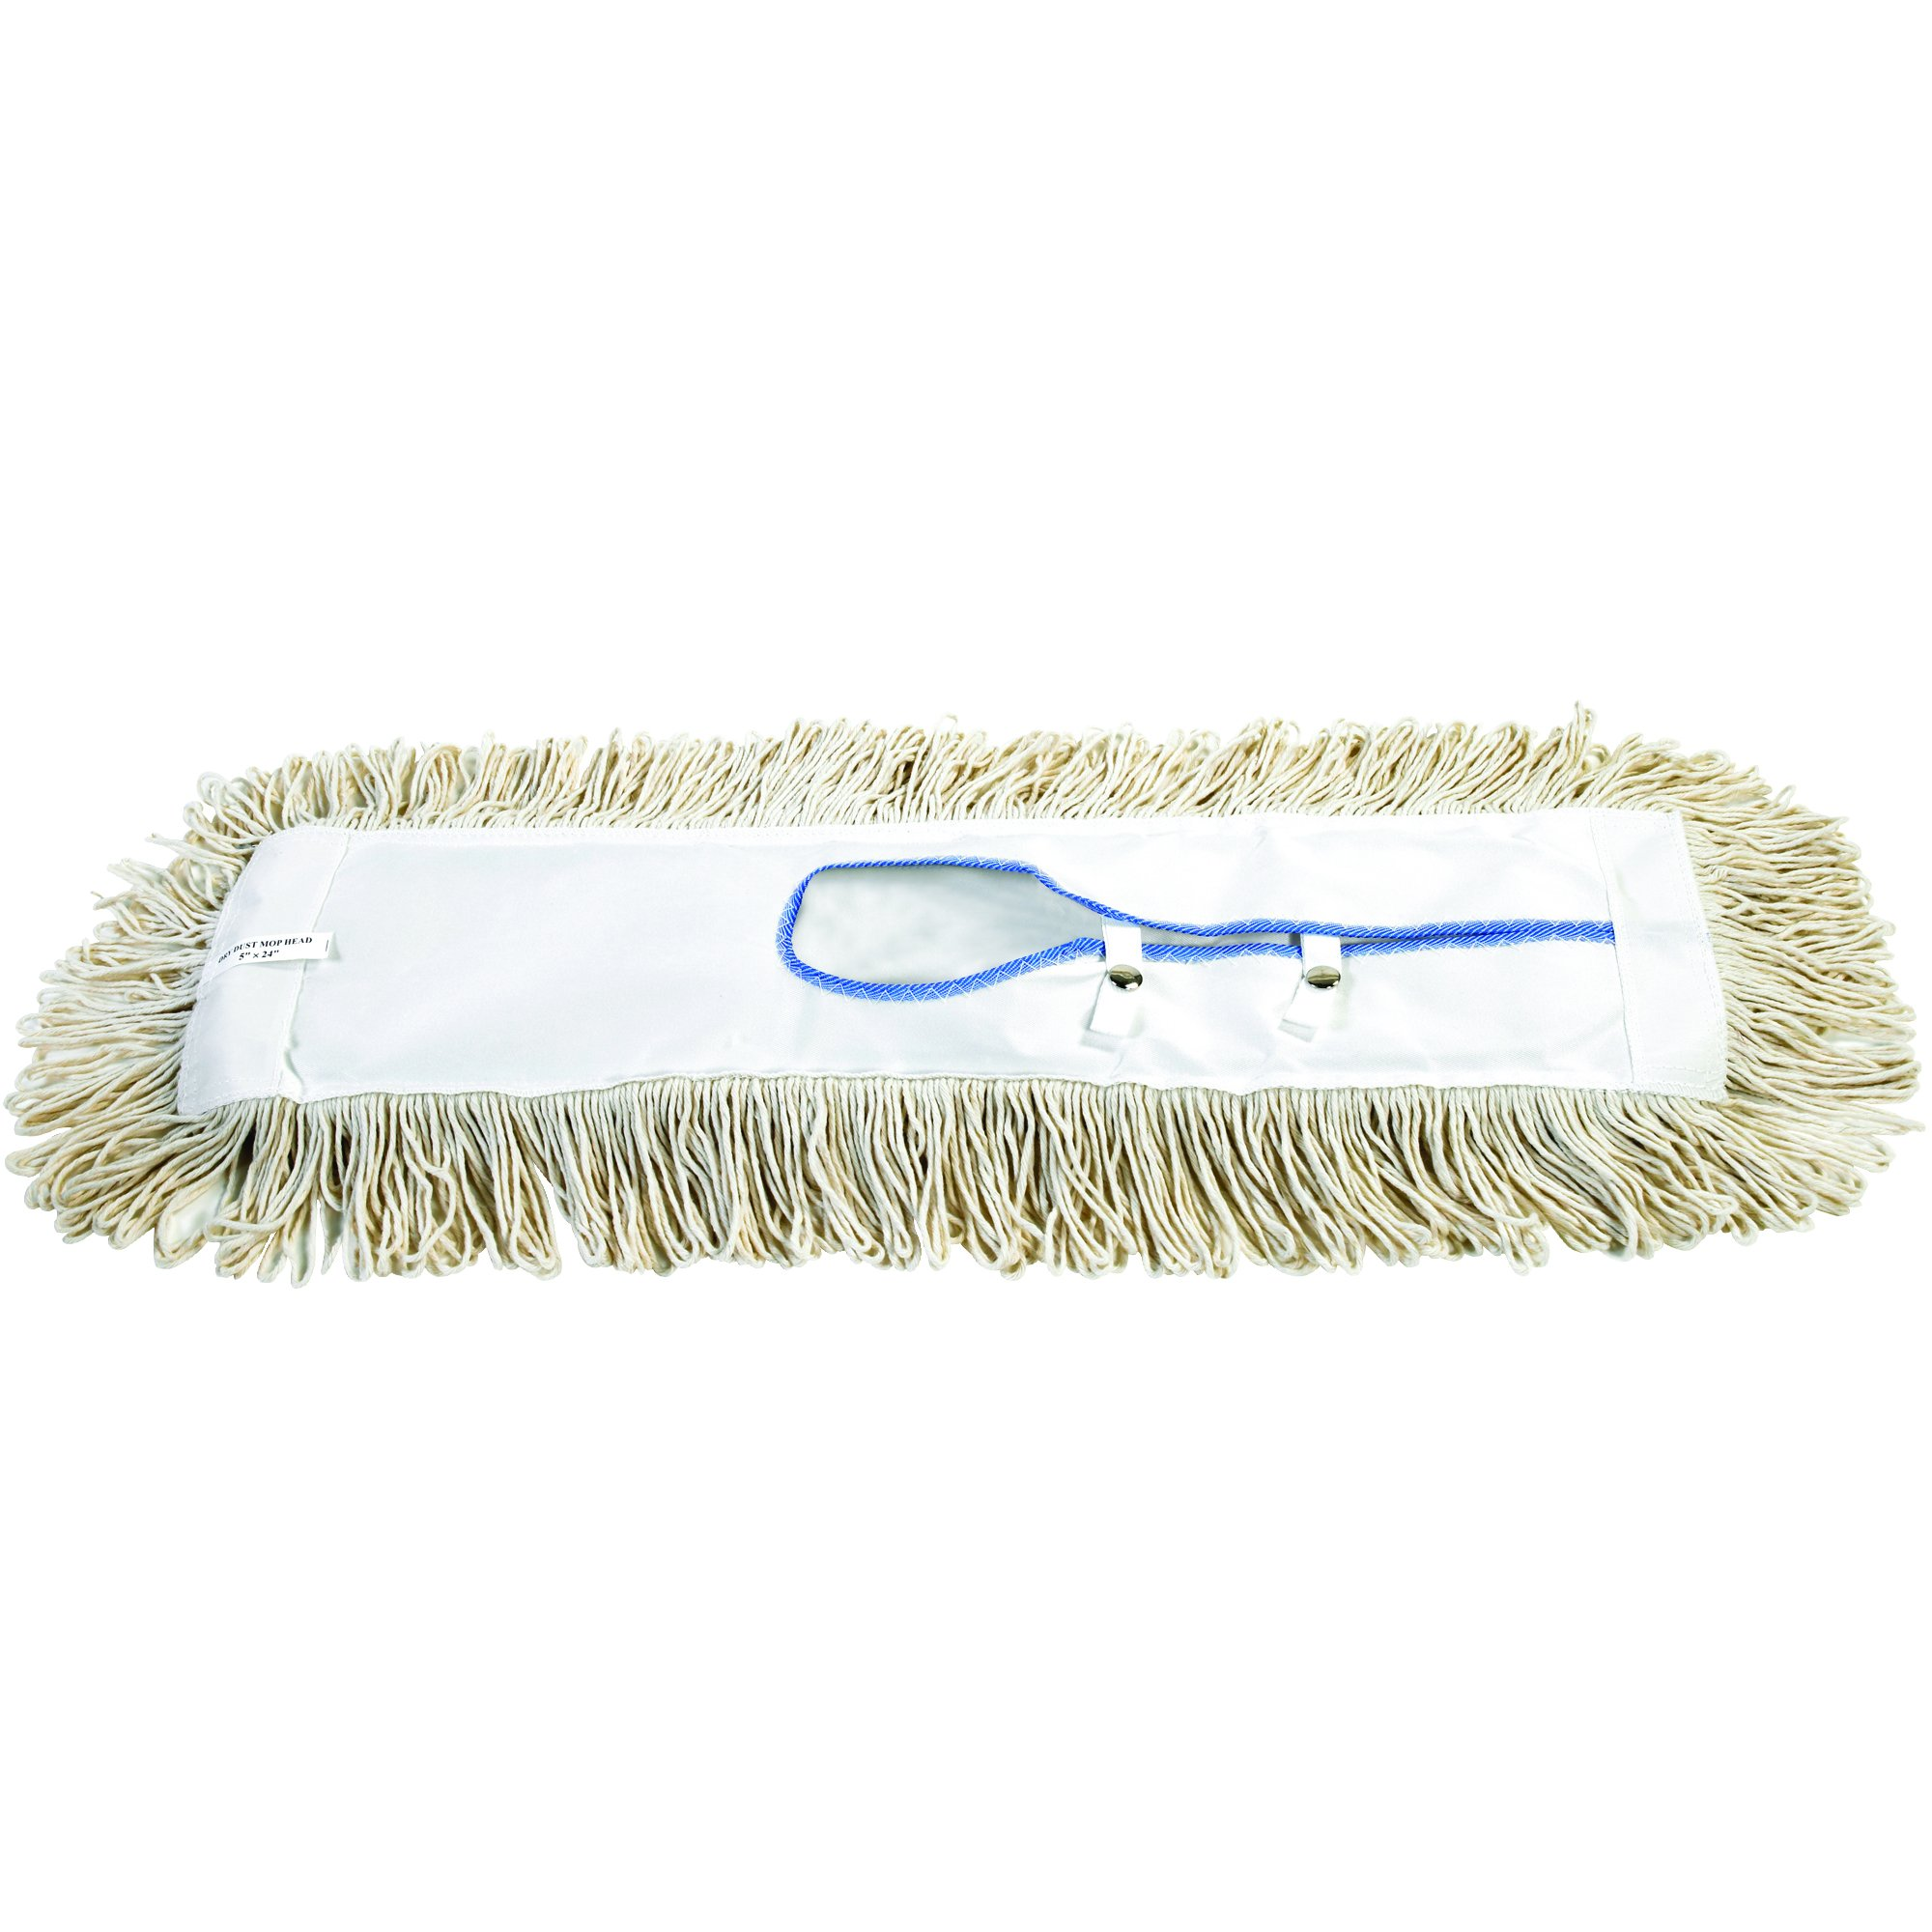 O-Cedar JAN136 24'' Economy Dry Dust Mop Replacement Heads (Pack of 12)